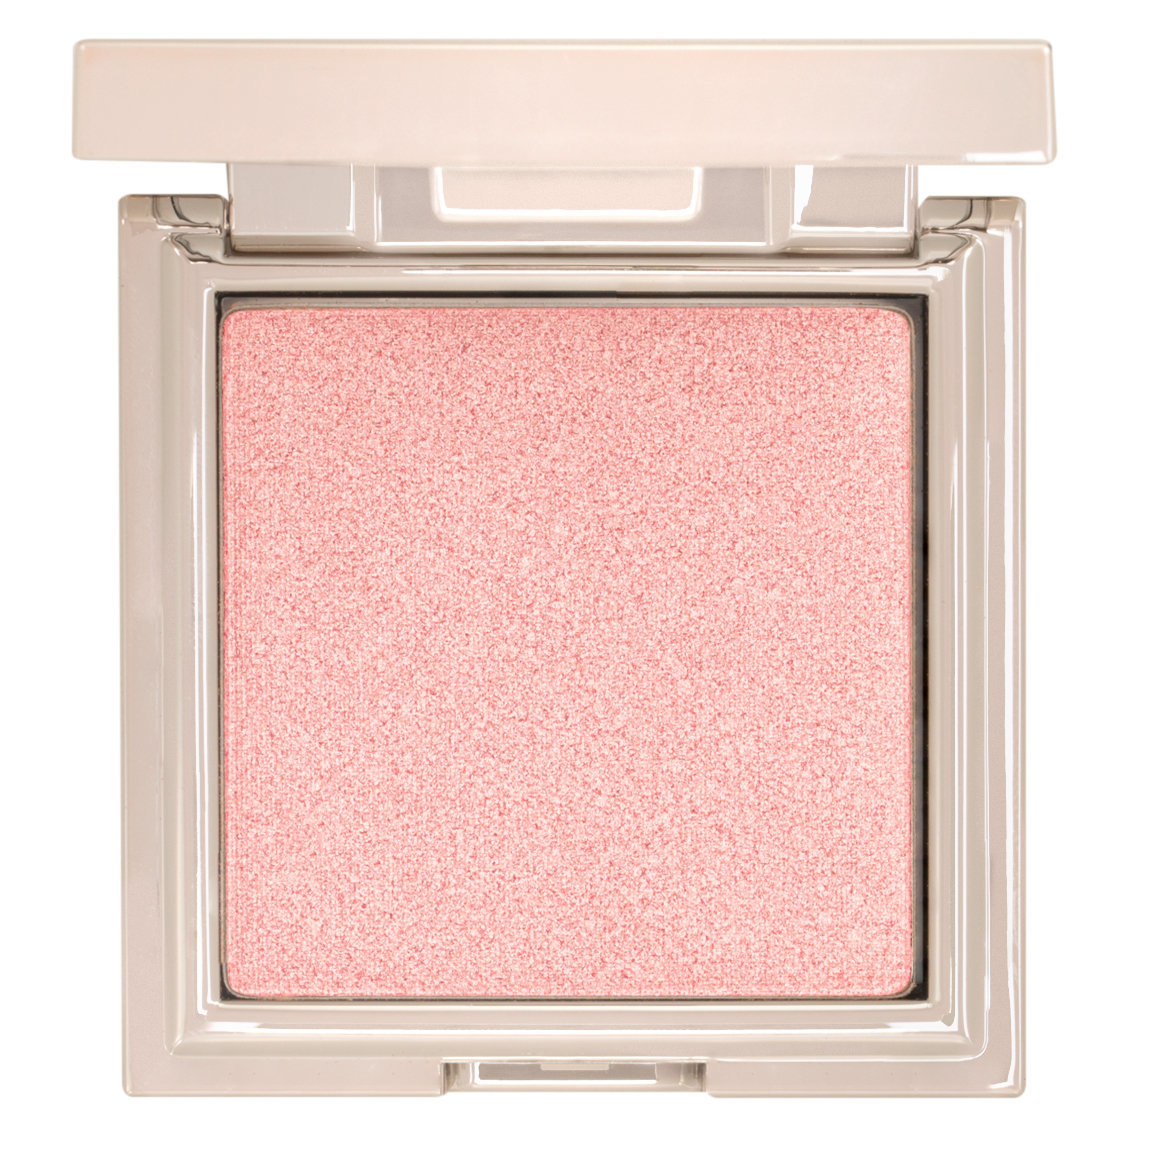 Jouer Cosmetics Powder Highlighter Rose Quartz product swatch.